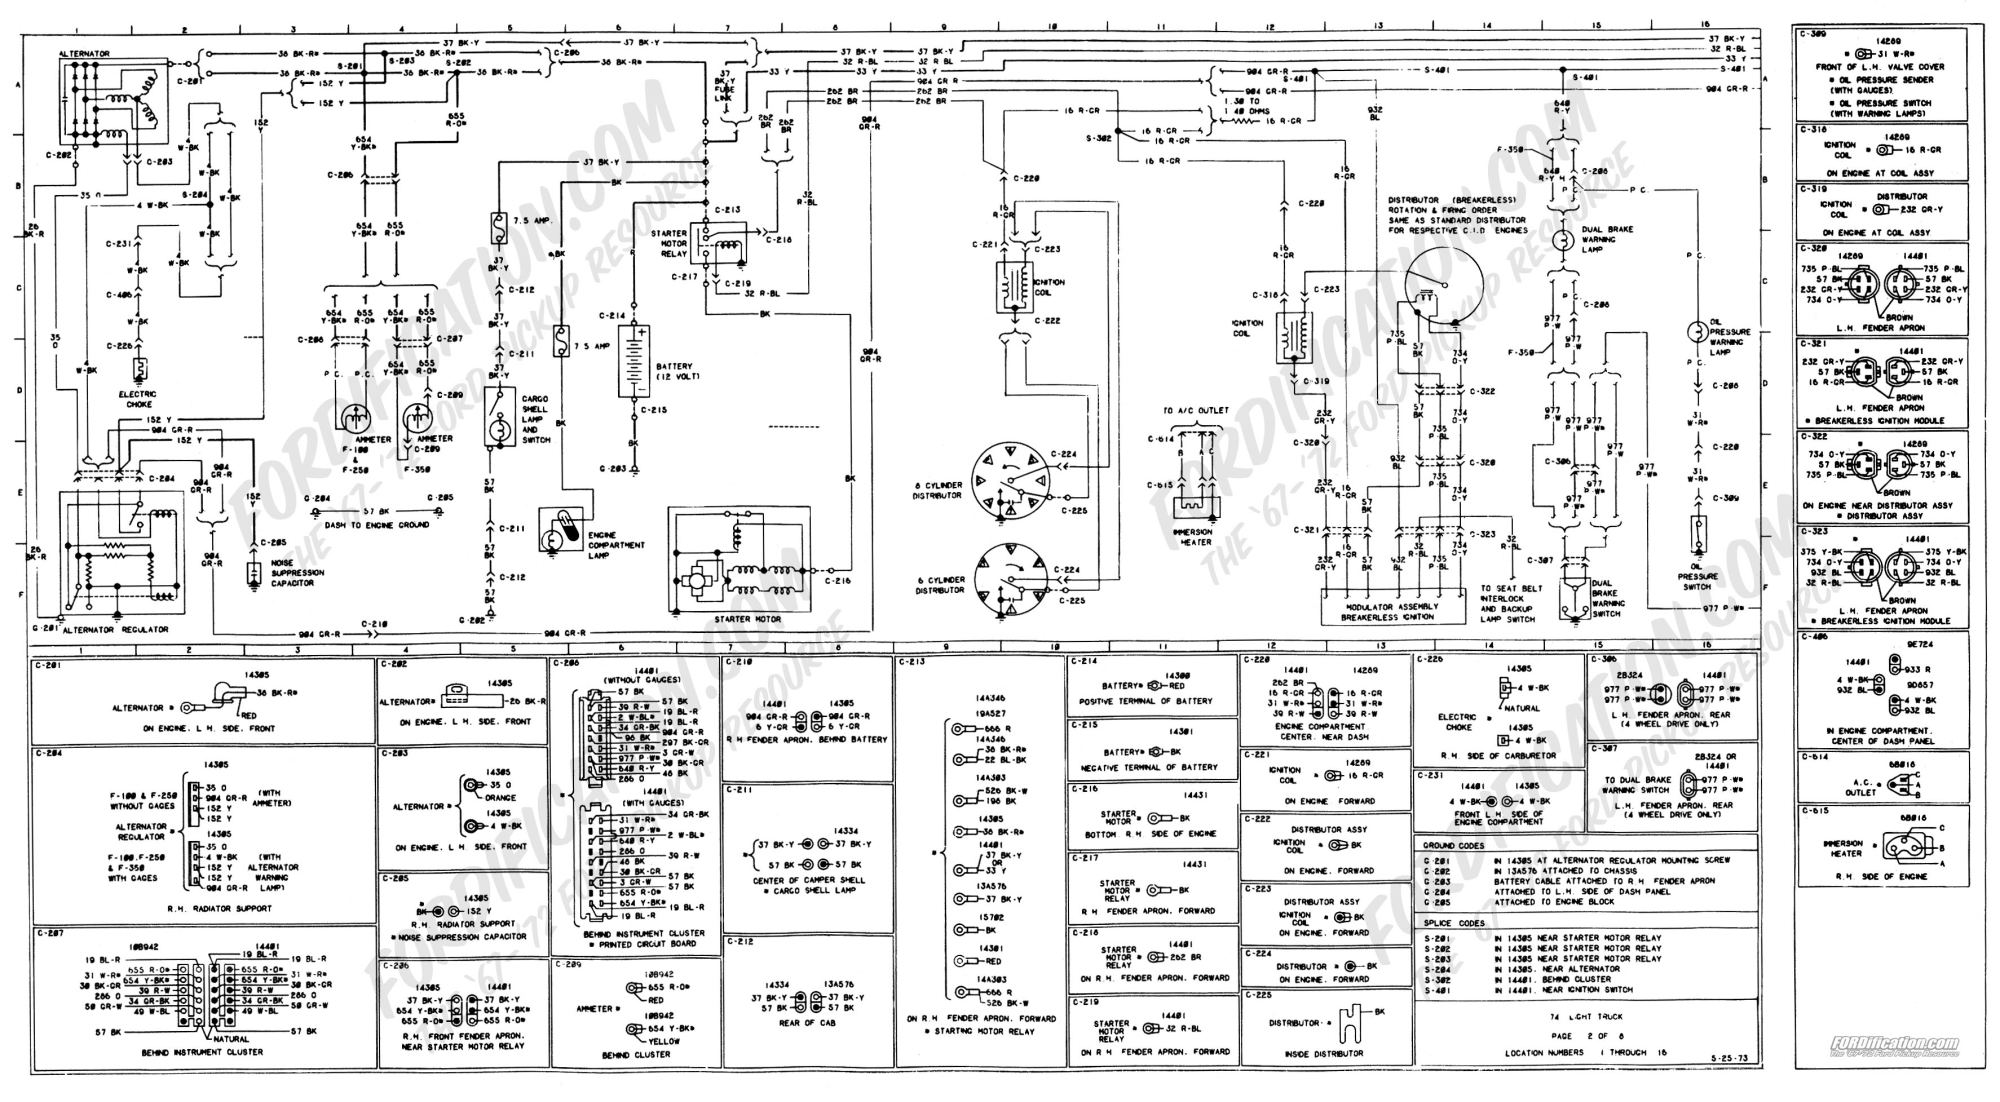 hight resolution of 1979 ford f 150 wiring schematic detailed wiring diagrams ford f650 fuse panel location 1997 ford